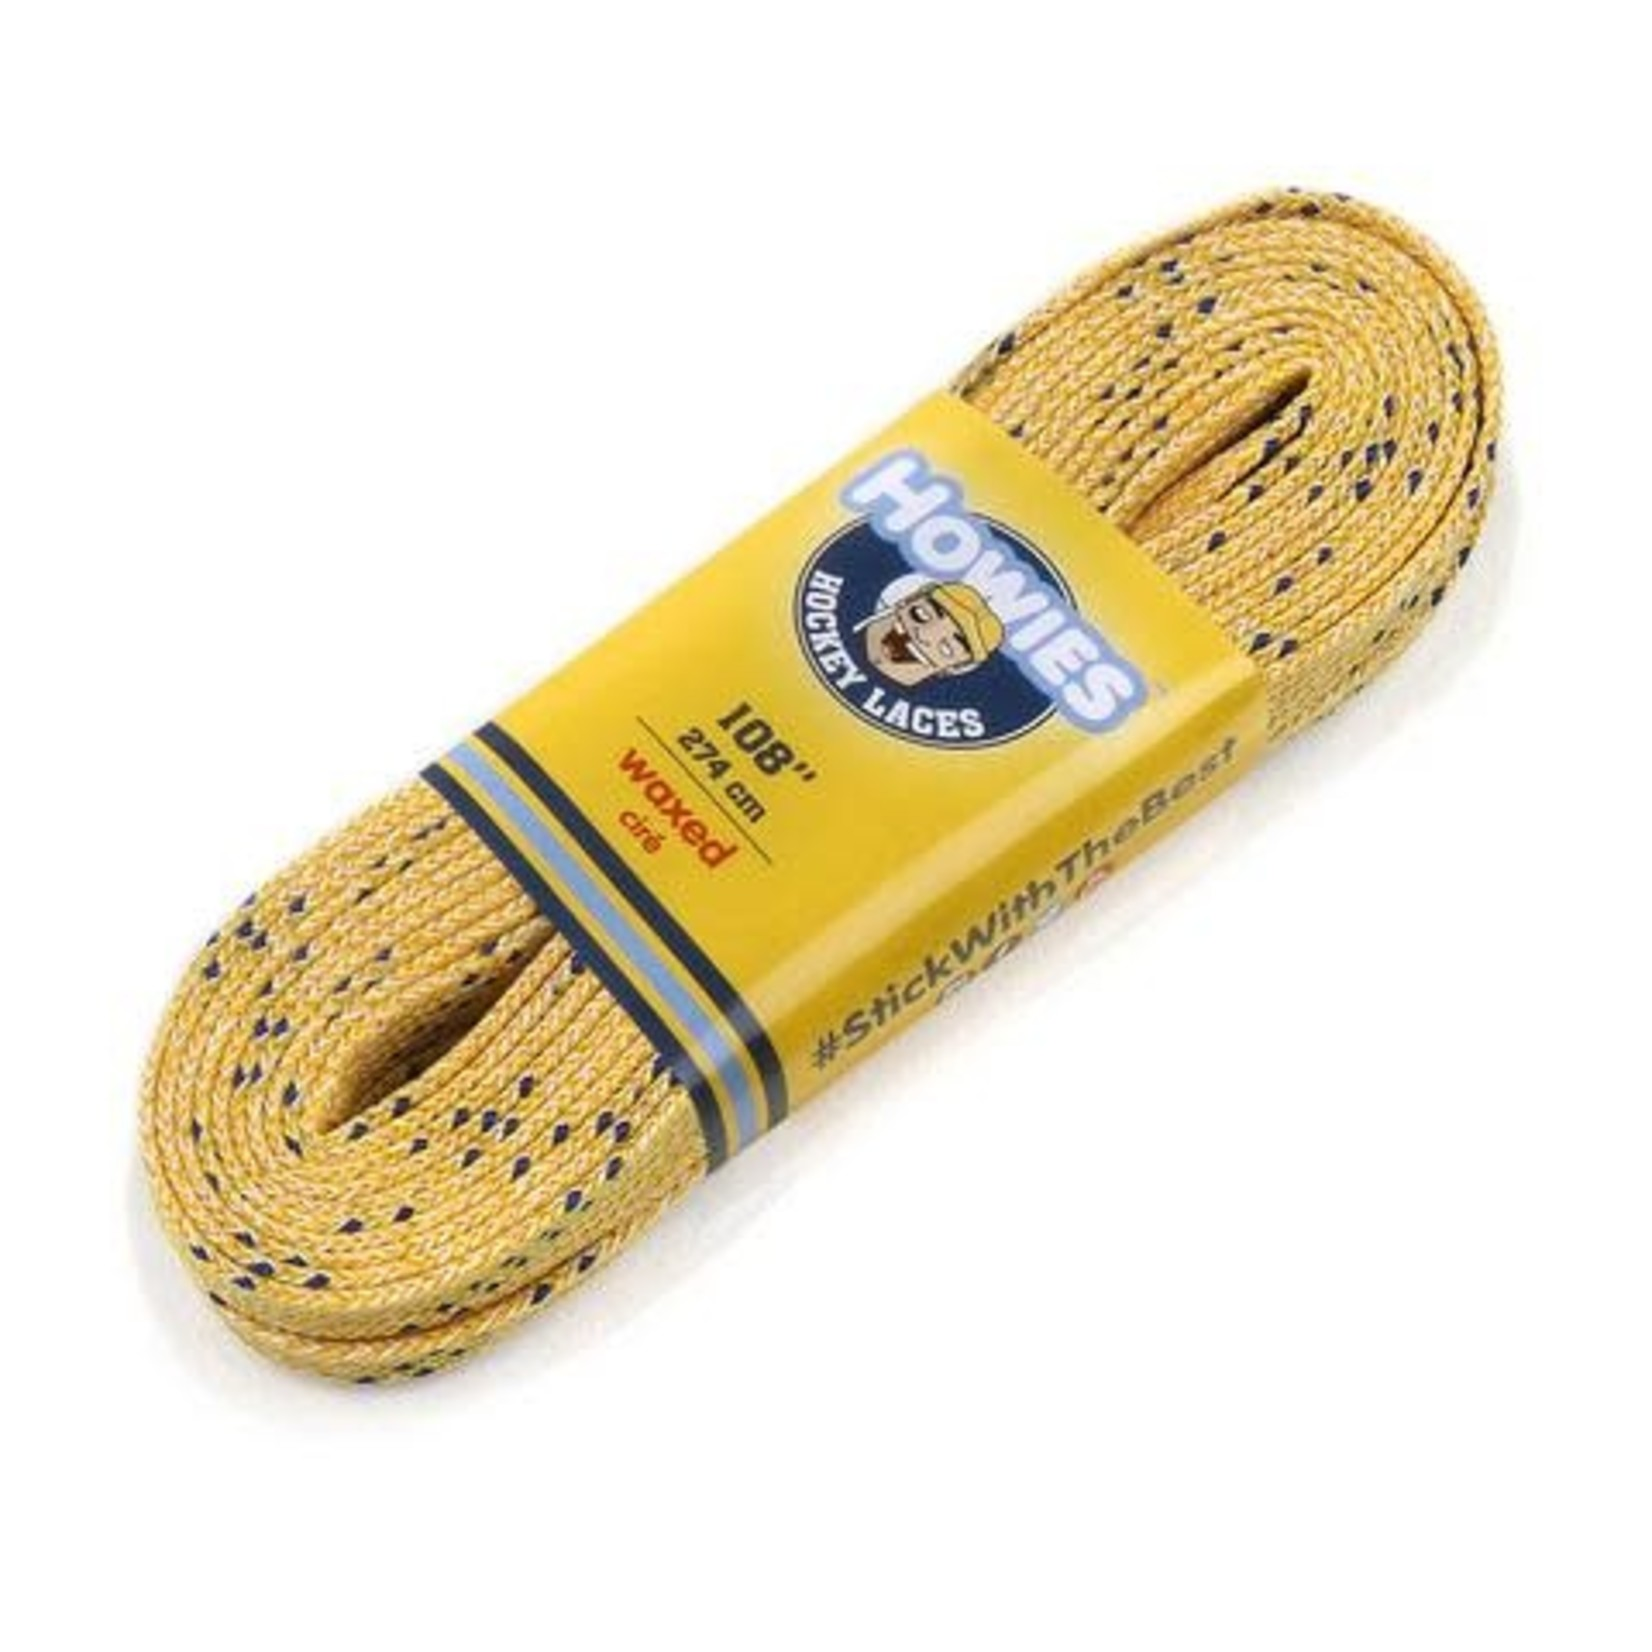 Howies Howies Hockey Skate Laces, Waxed